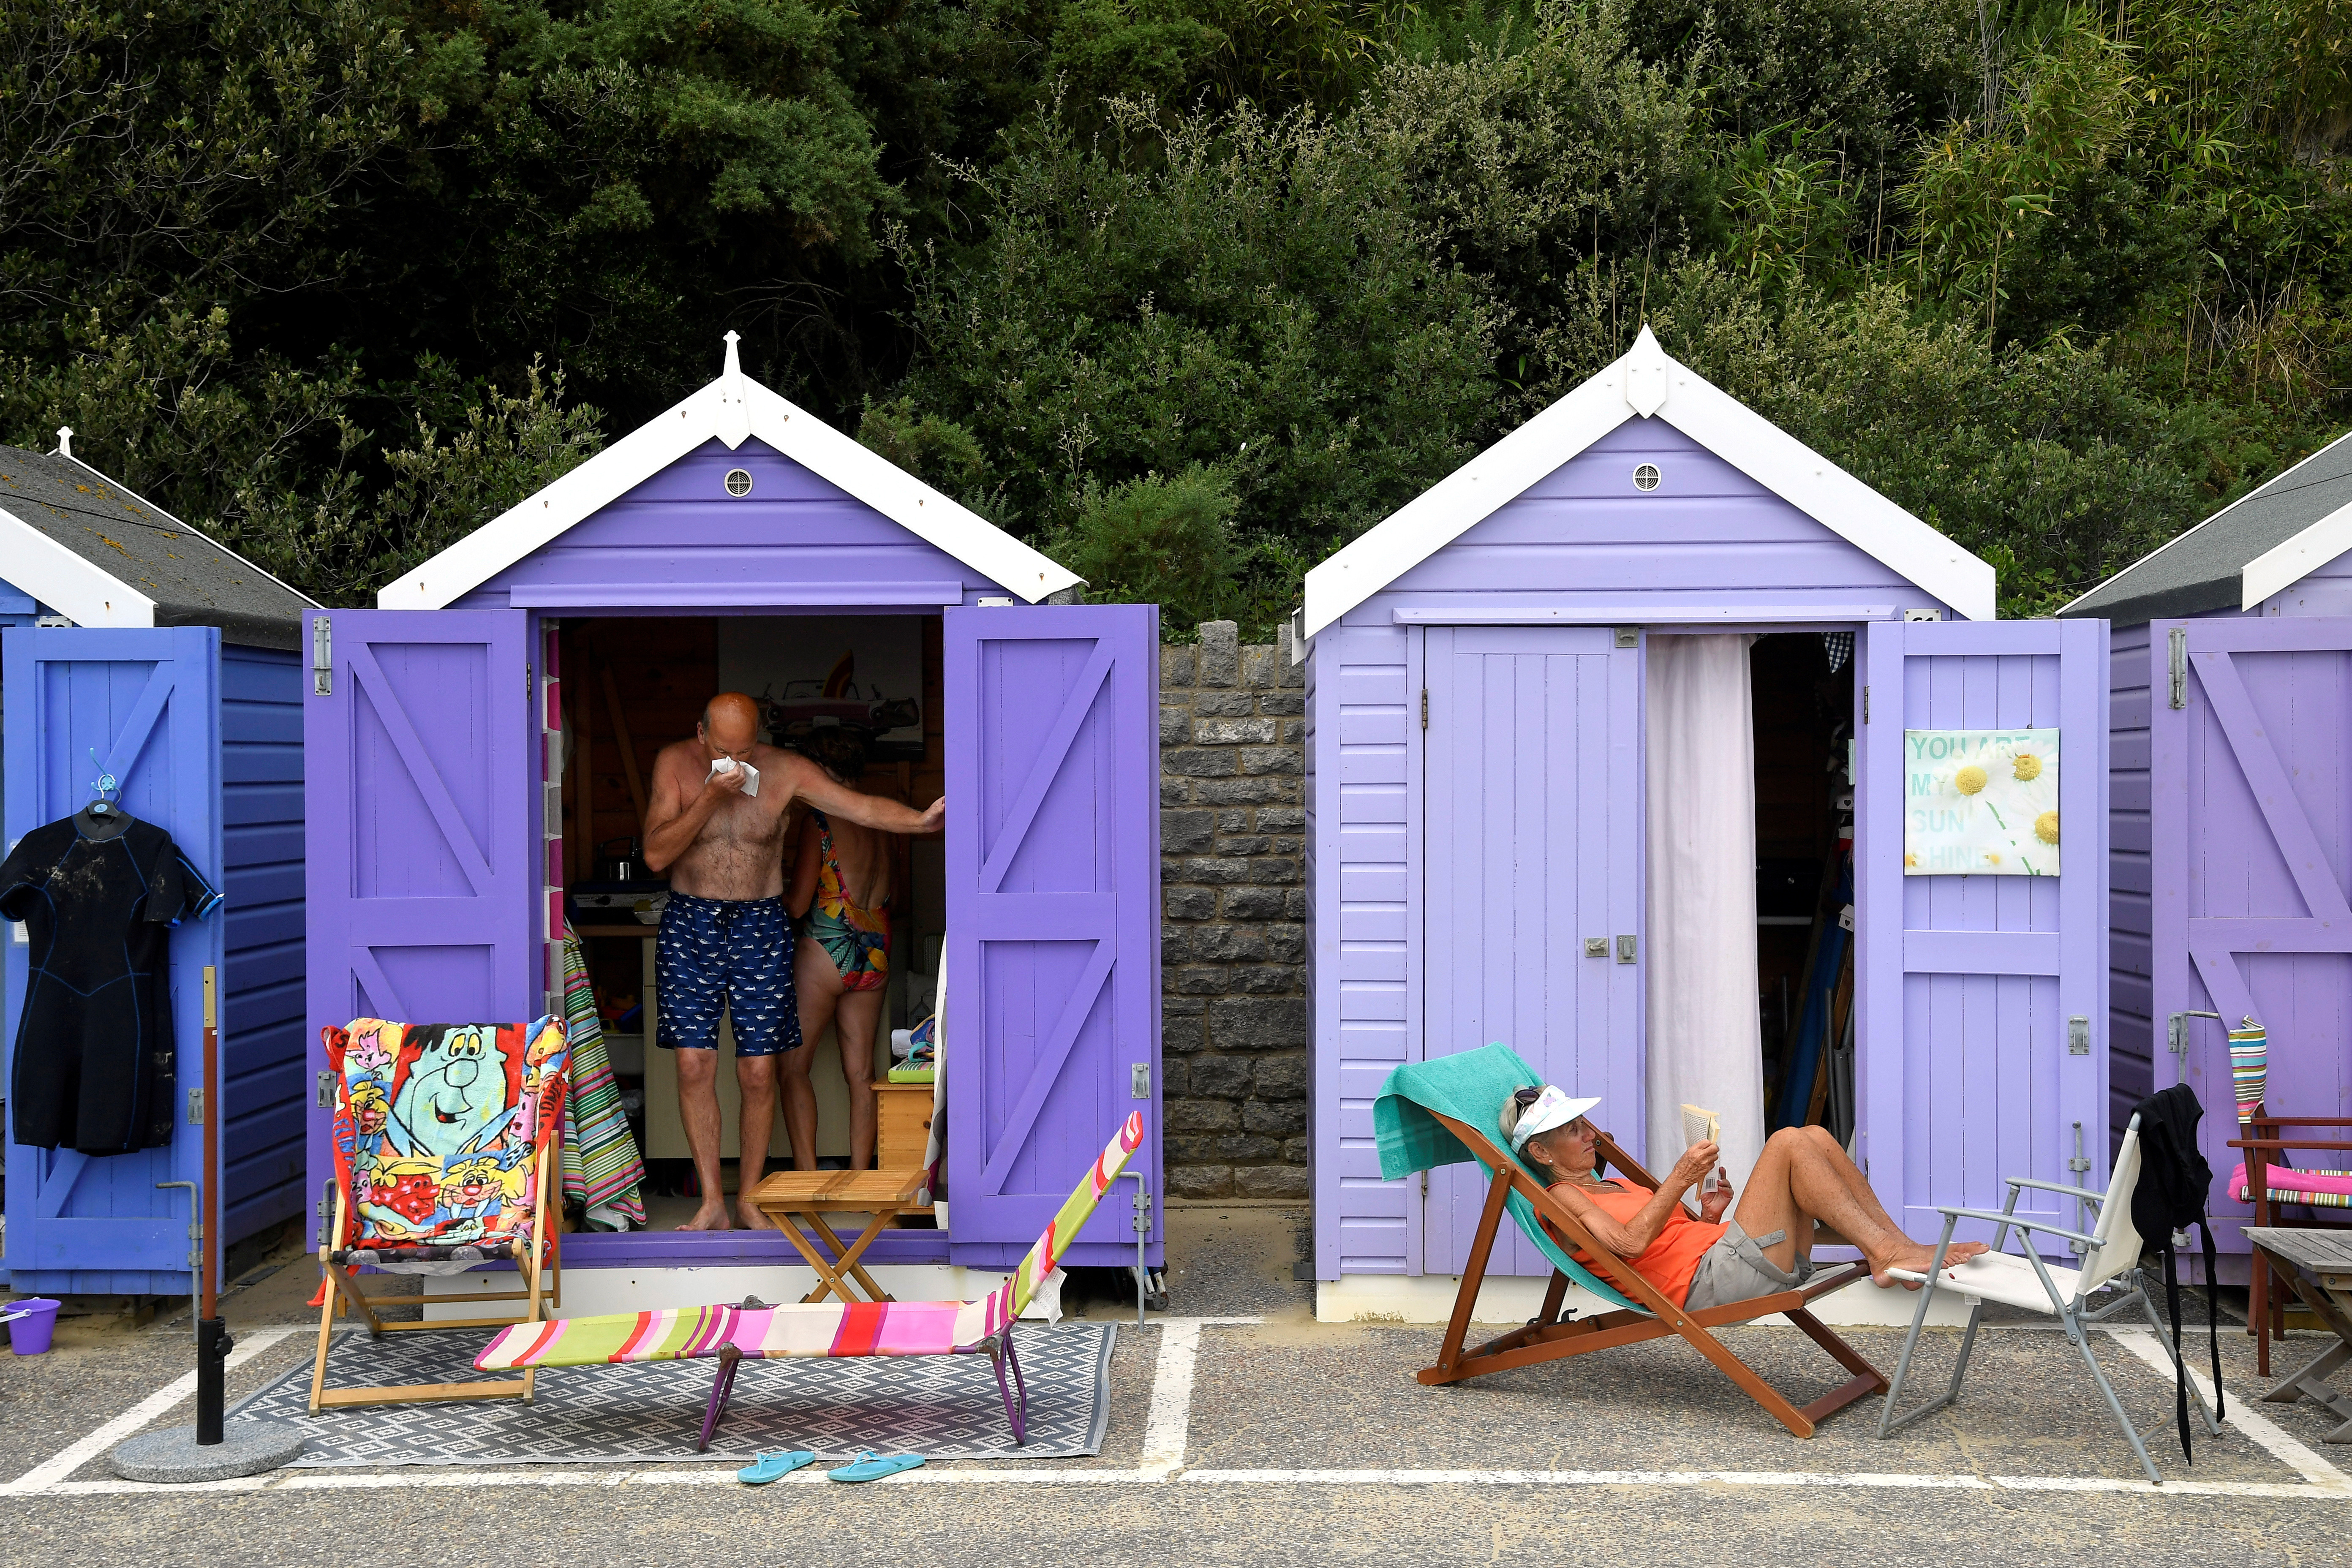 People relax as they enjoy the sunny weather at the Bournemouth Beach, amid the coronavirus disease (COVID-19) outbreak, in Bournemouth, Britain July 31, 2020. REUTERS/Toby Melville - RC2E4I9LXXK8